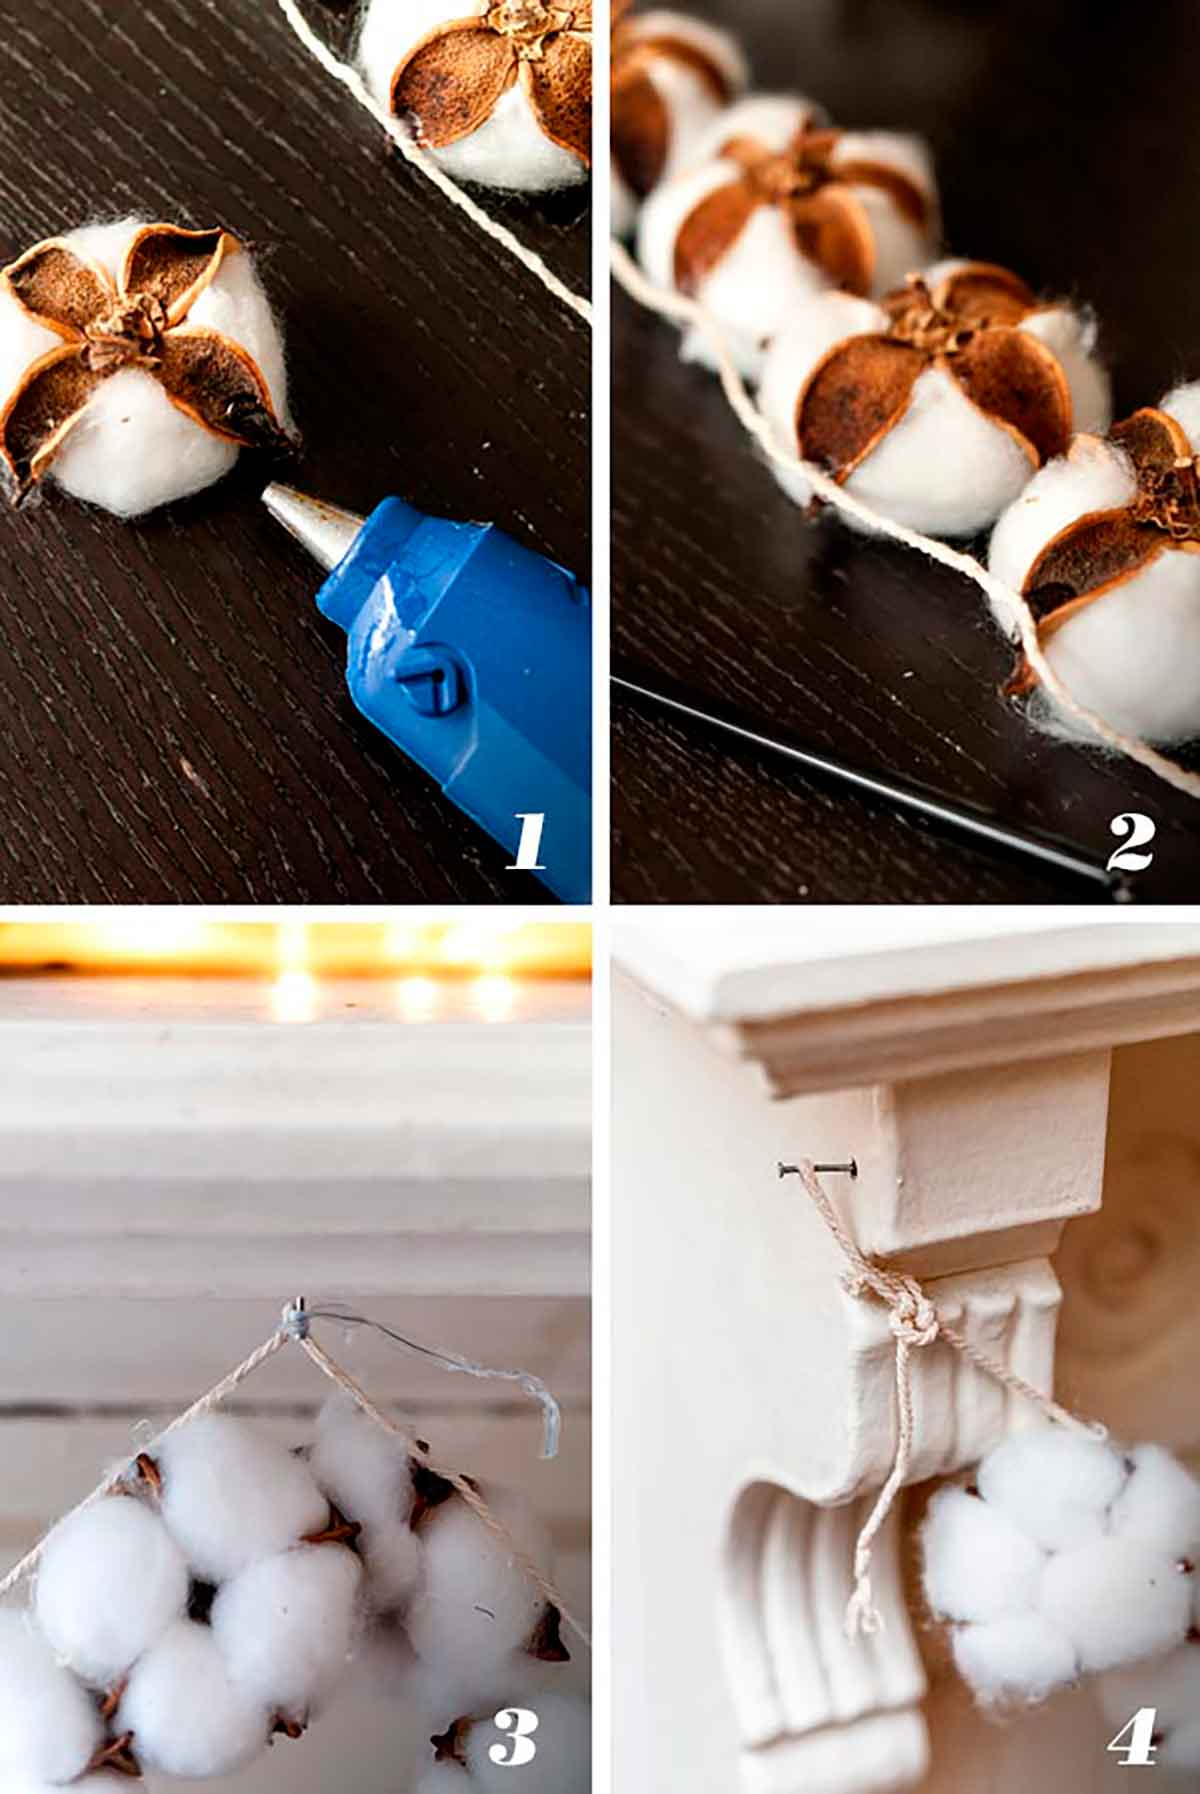 A collage of 4 numbered images showing how to make cotton garland.